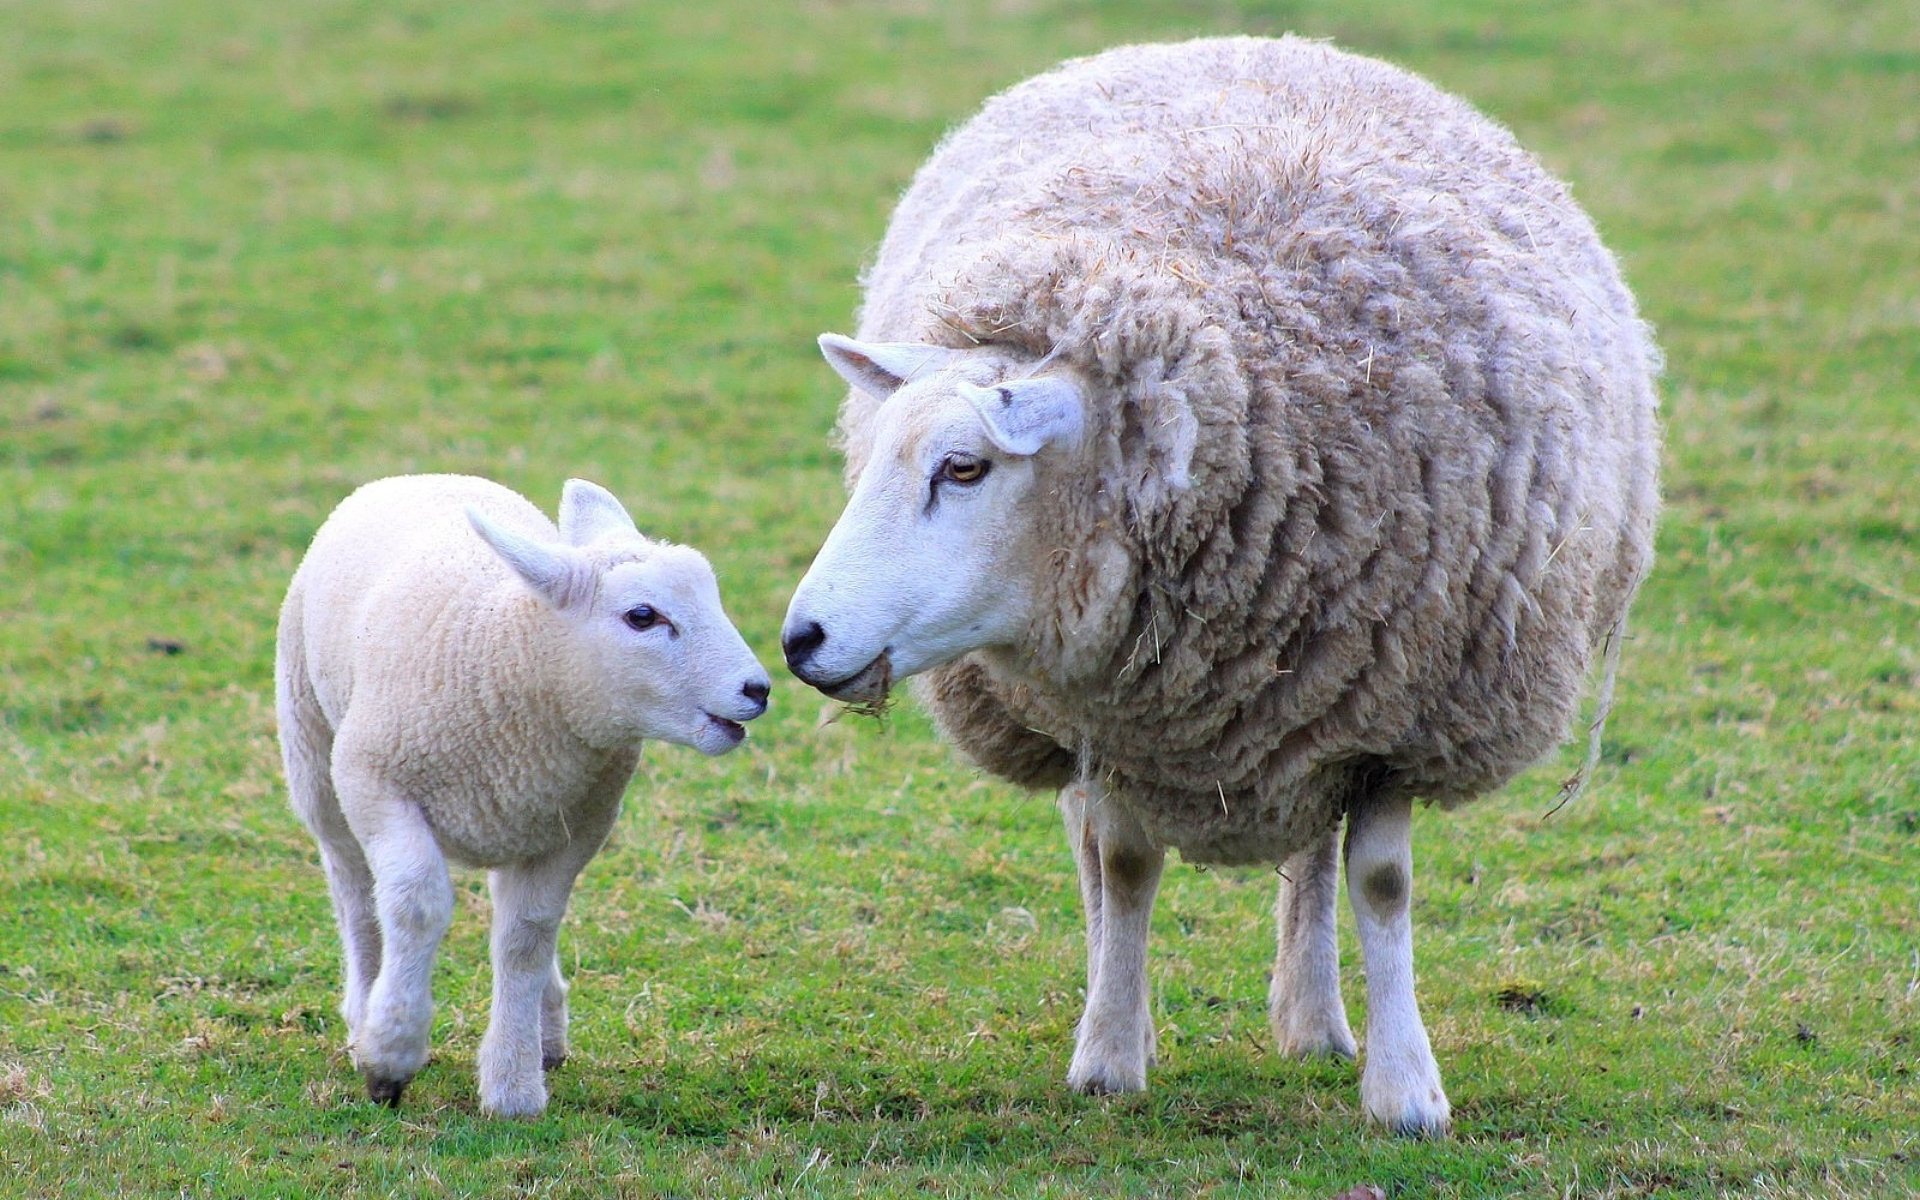 Sheep Images Ewe And Lamb Hd Wallpaper And Background Photos